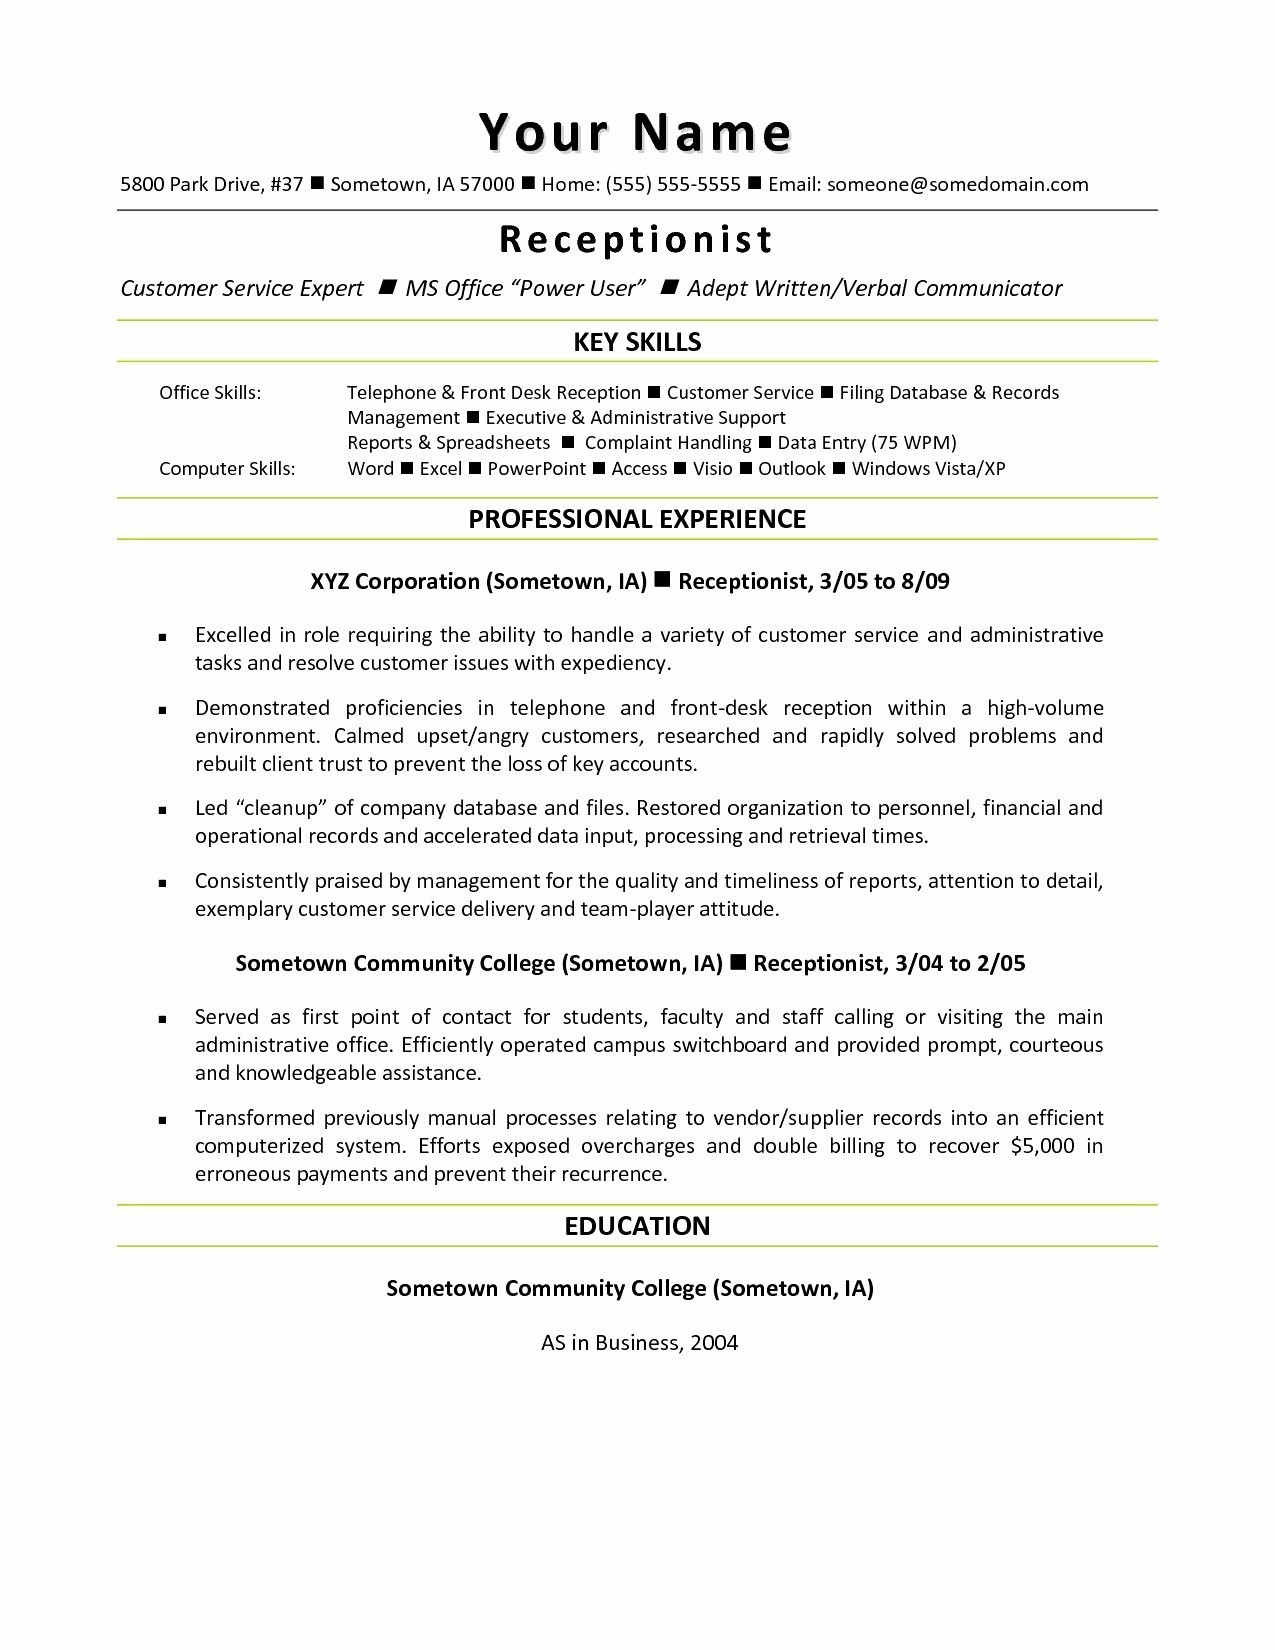 Lpn Nurse Resume Template - Nurse Resume Template New Lpn Resume Template Free Elegant Lpn